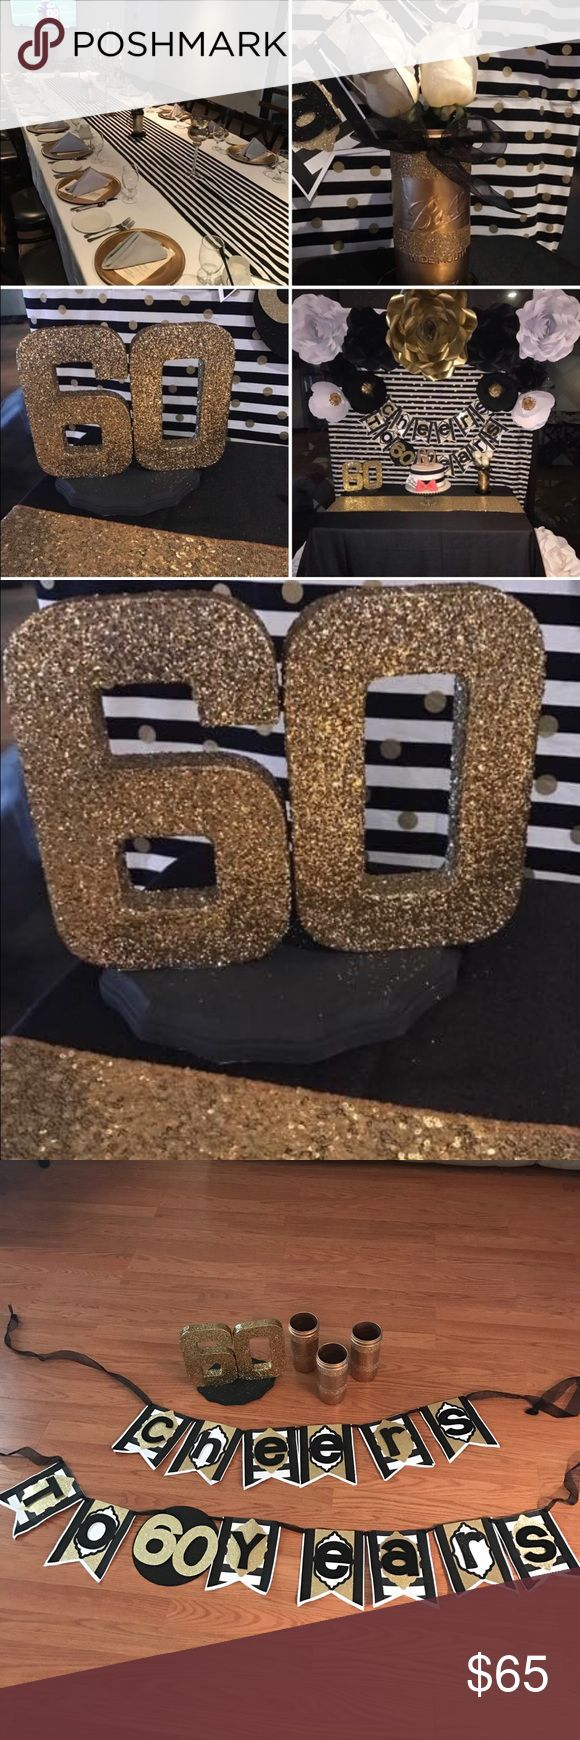 25 best ideas about 60th birthday party on pinterest for Decoration 60th birthday party